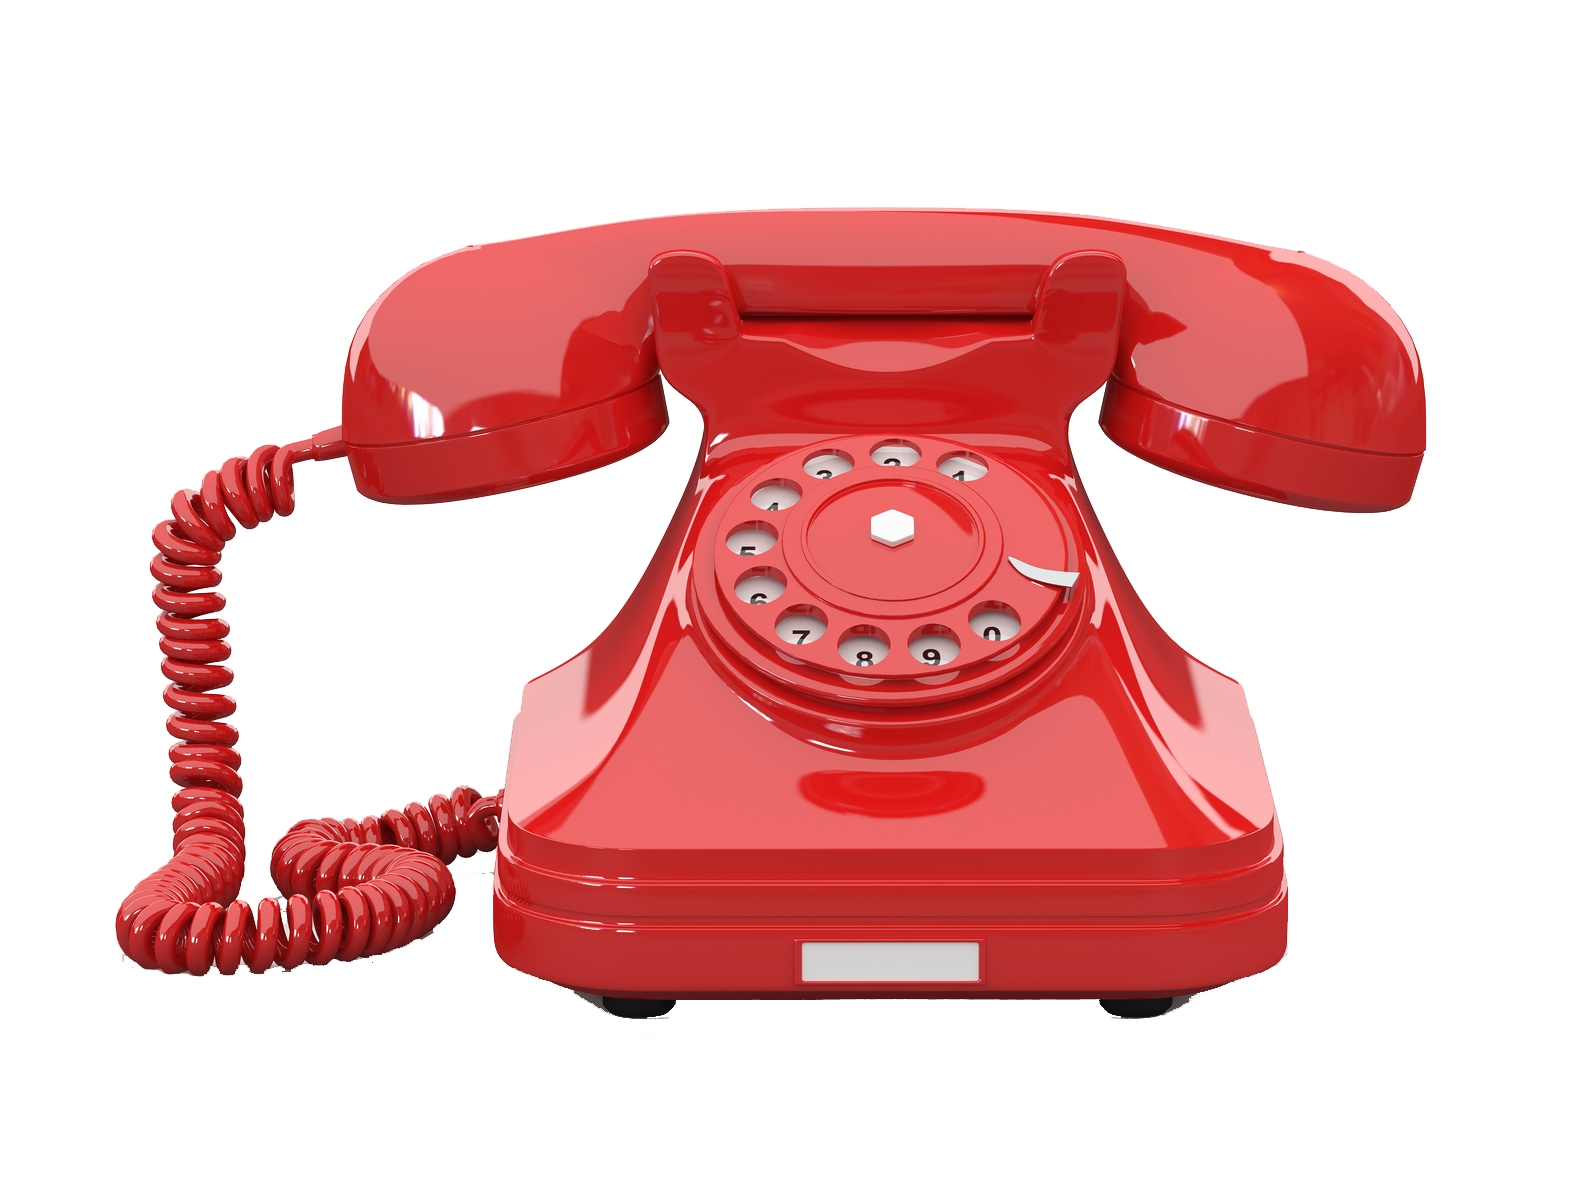 Telephone clipart red telephone. Png transparent images group